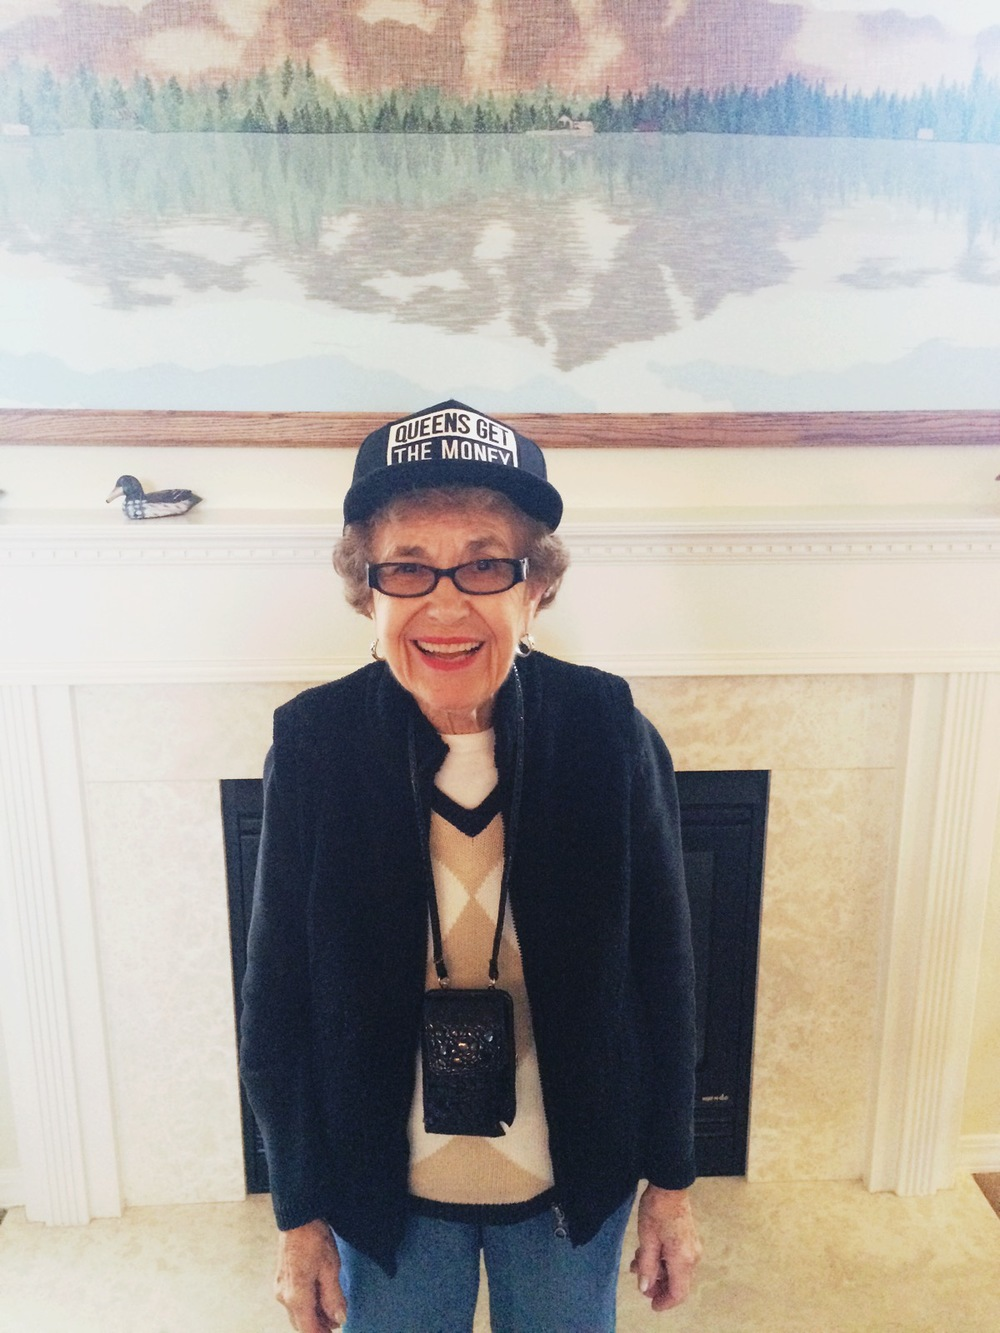 Grandma S. being a great sport and wearing that youthful hat =]